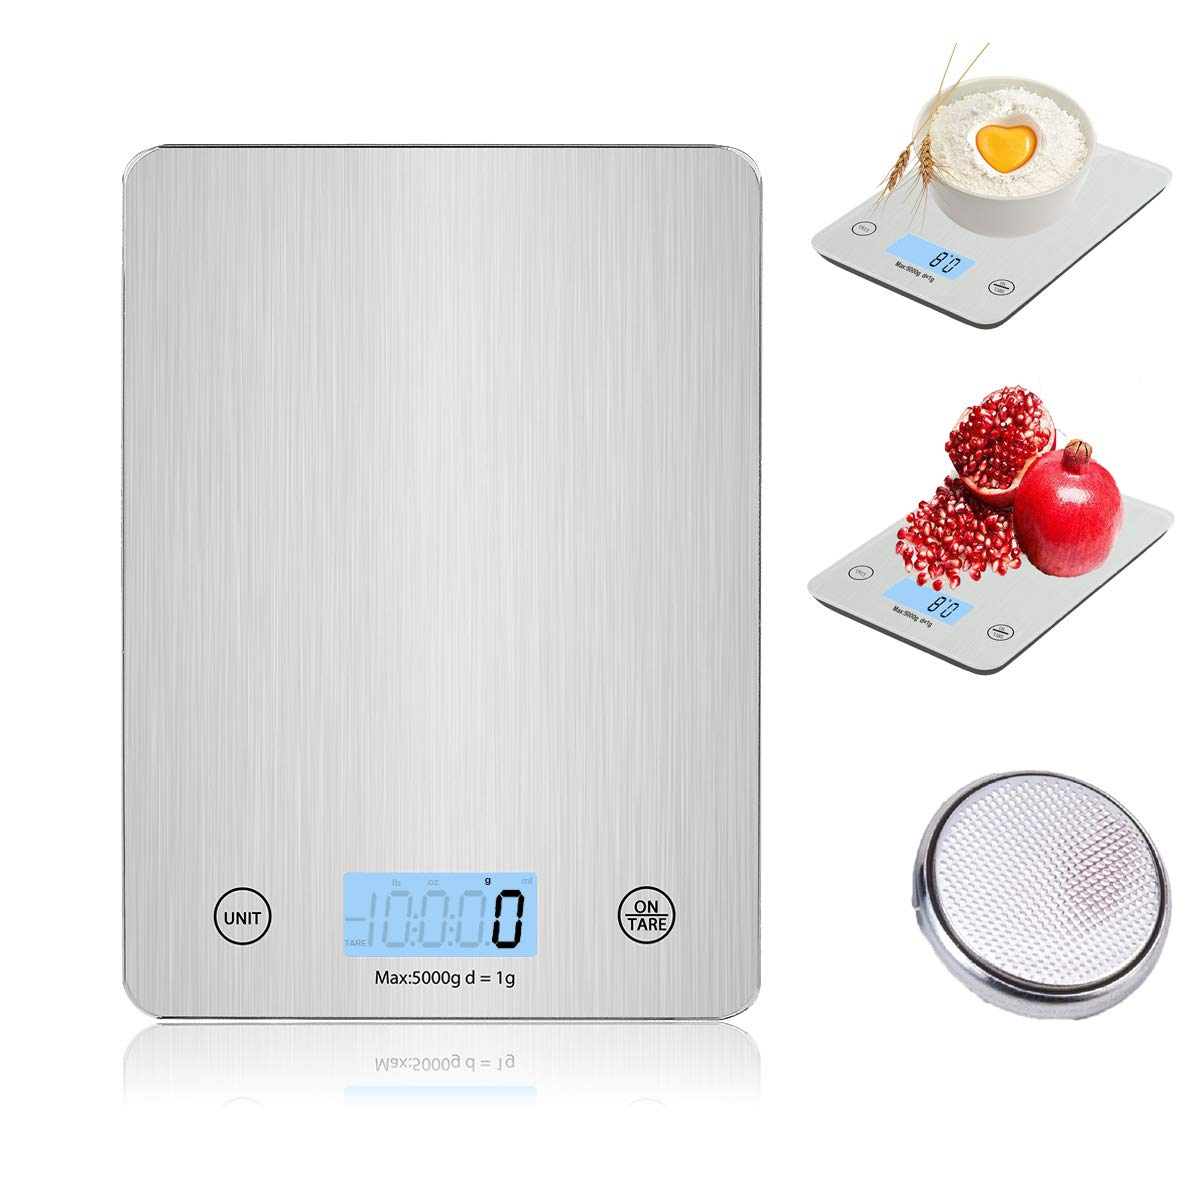 Digital Kitchen Scale, 5kg/11lb High Precision Food Weighing Scale with LCD Display, Ultra-Thin and Stylish Tempered Glass Platform, Anti-Fingerprint Easy to Clean, Electronic Cooking Scale, Tare Function, Silver UROPA HERO